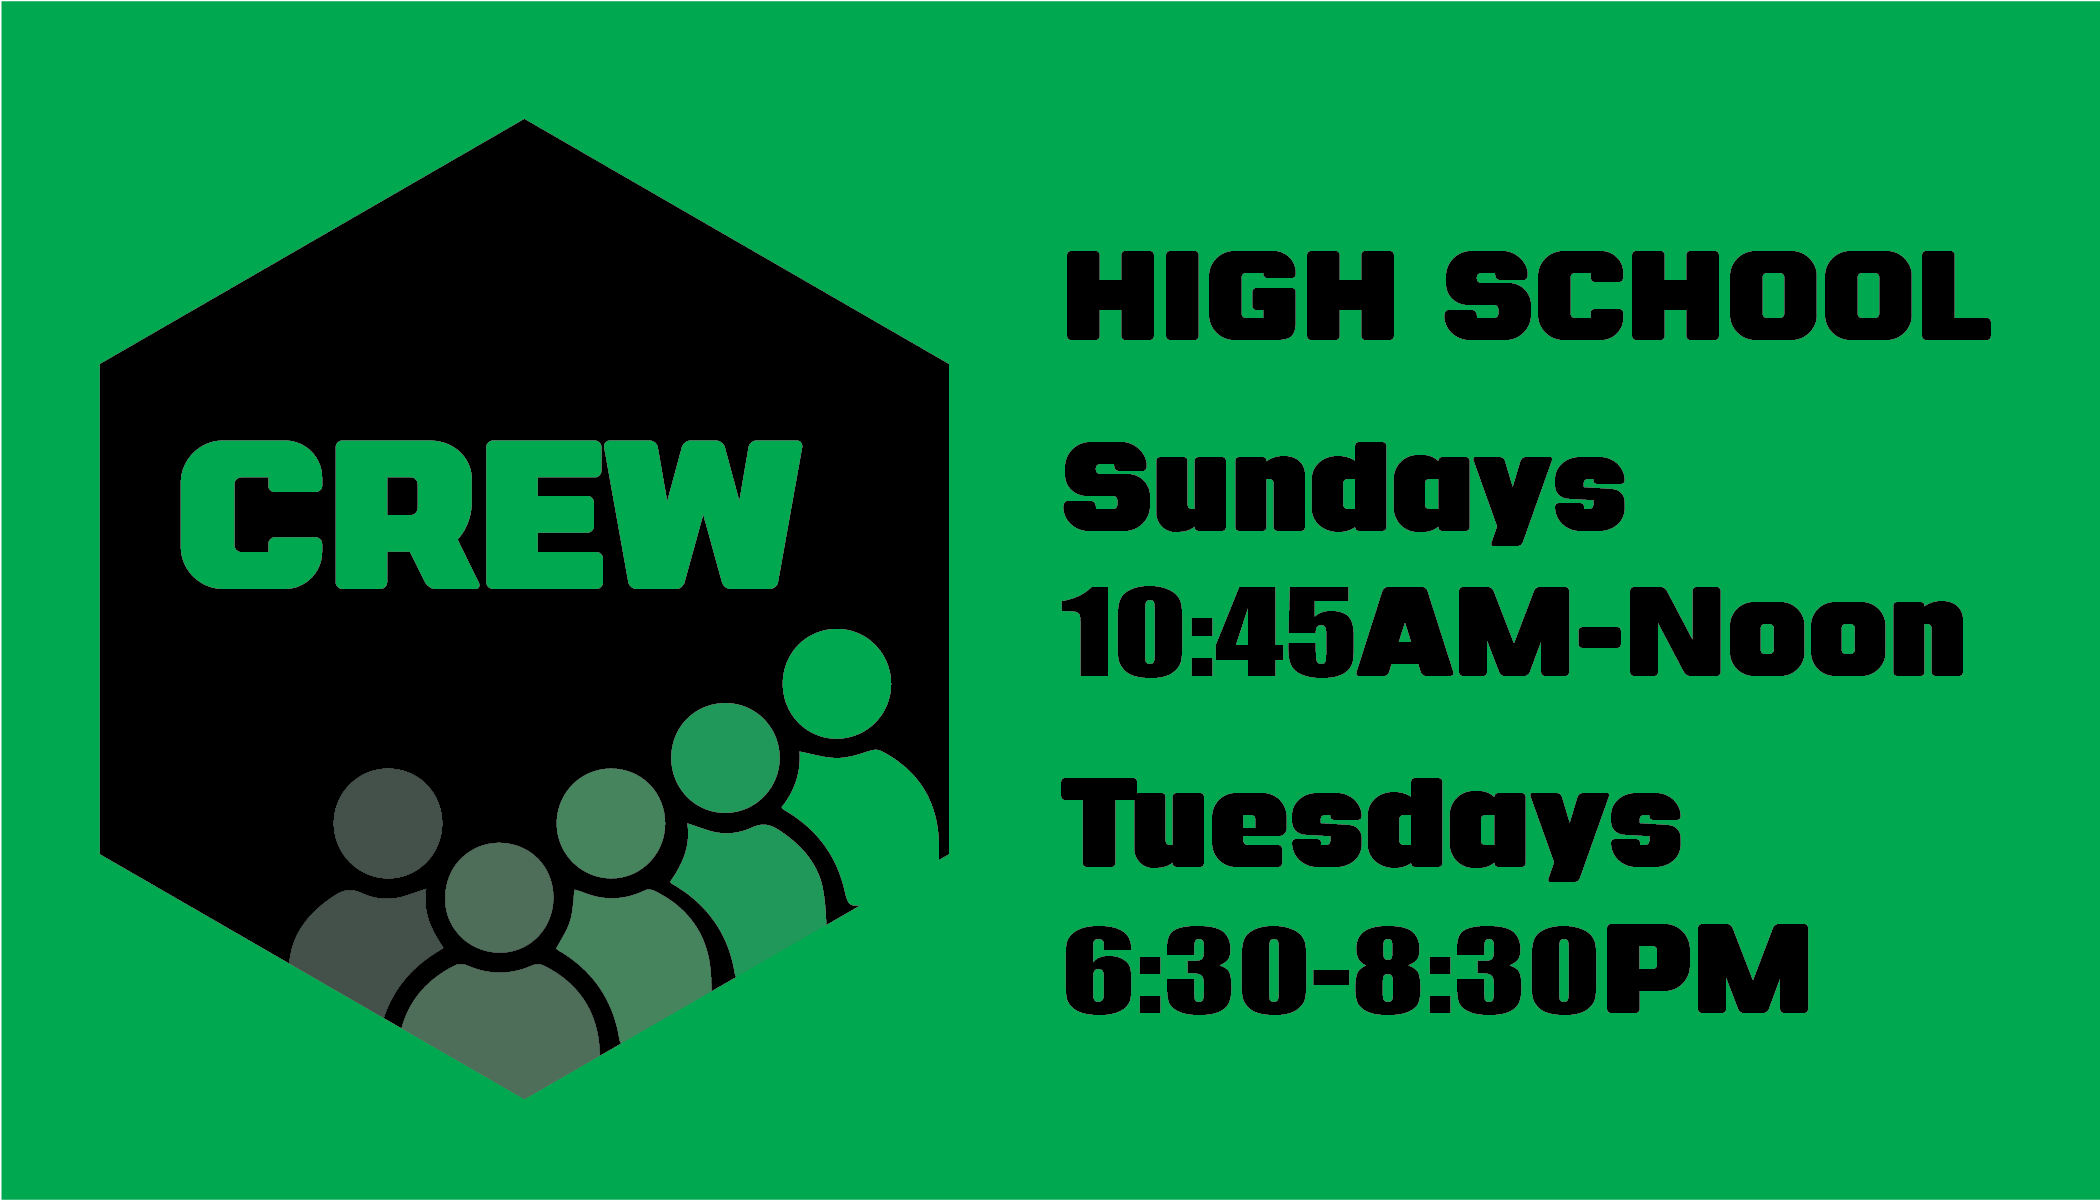 CREW Hours website_Artboard 1.png